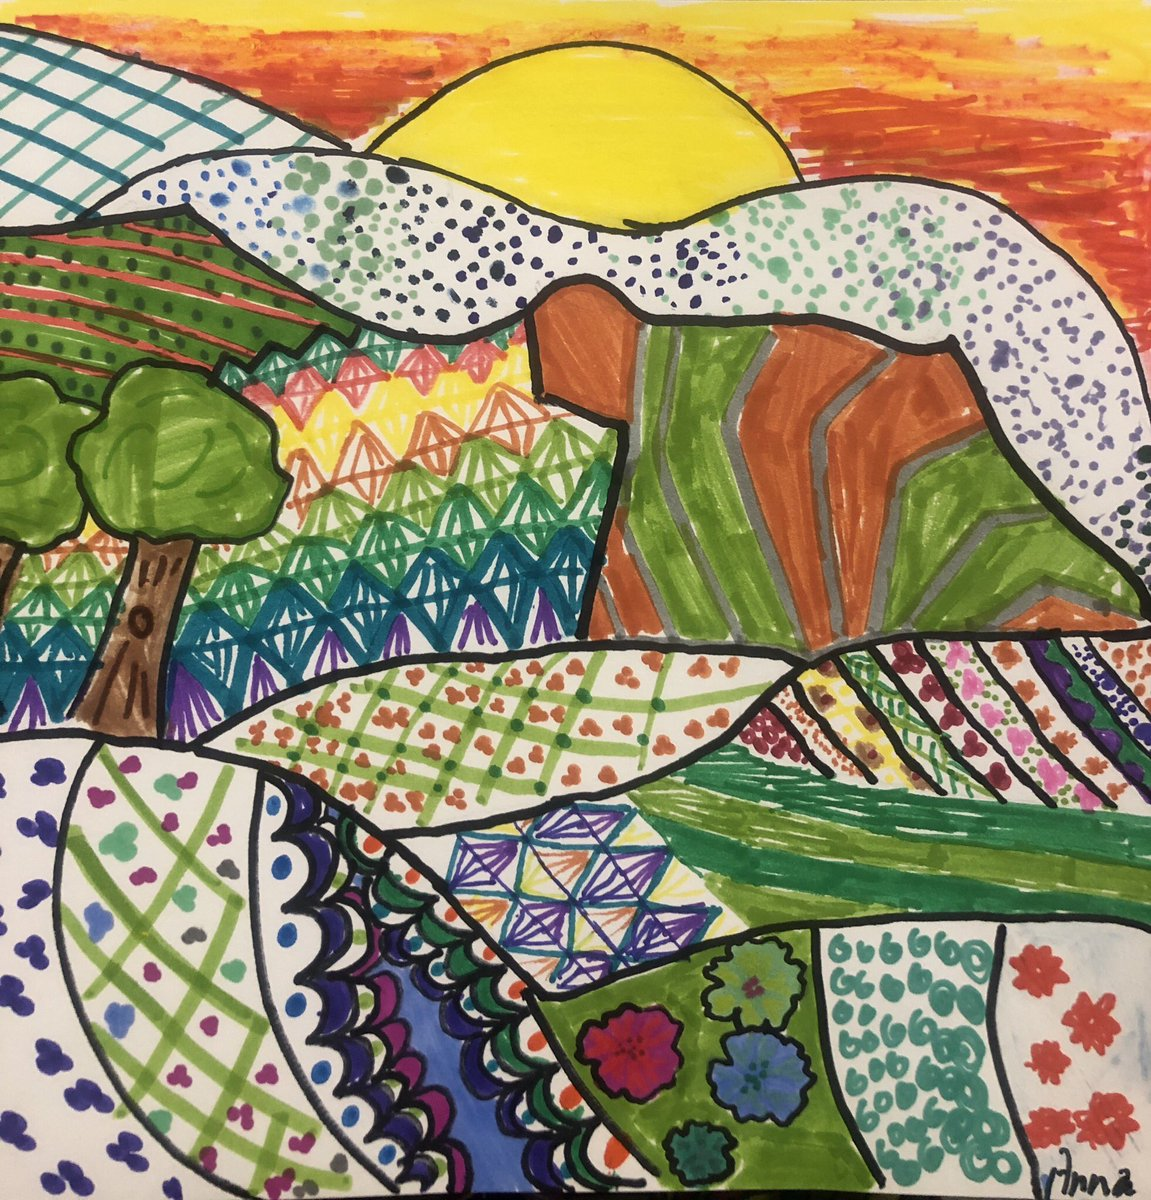 I'm in love with these patterned landscapes made by out talented 4th graders <a target='_blank' href='http://twitter.com/APS_ATS'>@APS_ATS</a> <a target='_blank' href='http://twitter.com/APSArts'>@APSArts</a> <a target='_blank' href='http://twitter.com/ATS_4thGrade'>@ATS_4thGrade</a> <a target='_blank' href='http://twitter.com/ATSIdol'>@ATSIdol</a> <a target='_blank' href='https://t.co/0JCYIRxDeC'>https://t.co/0JCYIRxDeC</a>